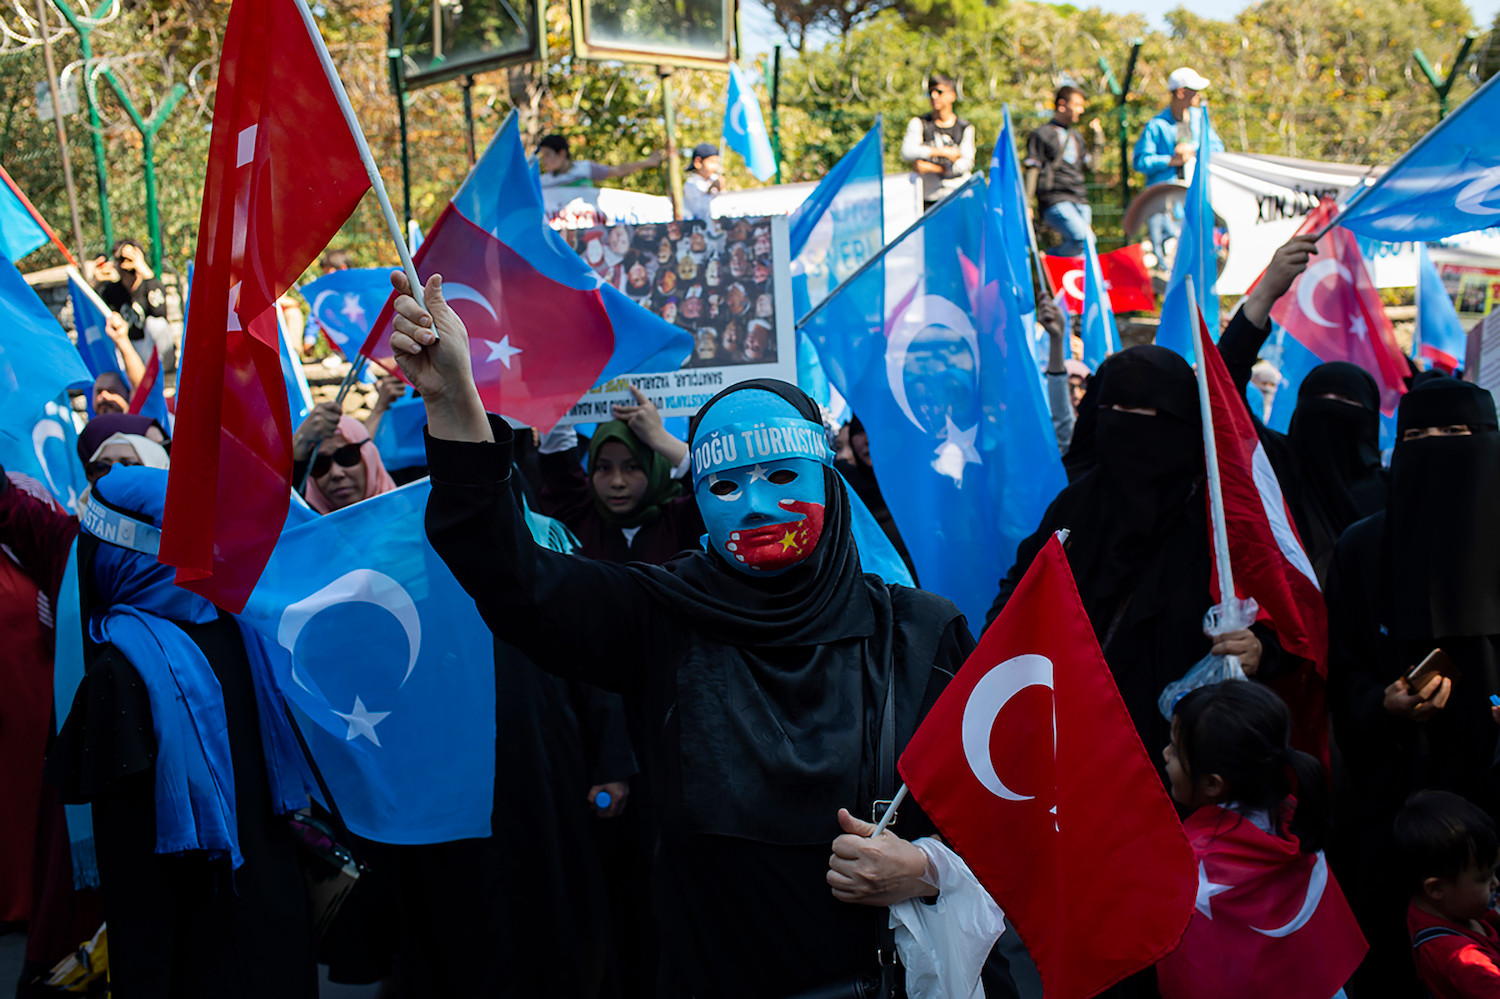 Supporters of China's Muslim Uighur minority and Turkish nationalists wave the flag of East Turkestan during an anti-China protest in front of the Chinese consulate in Istanbul on October 1, 2019, on the 70th anniversary of the founding of The People's Republic of China. (Photo by Yasin AKGUL / AFP) (Photo credit should read YASIN AKGUL/AFP via Getty Images)